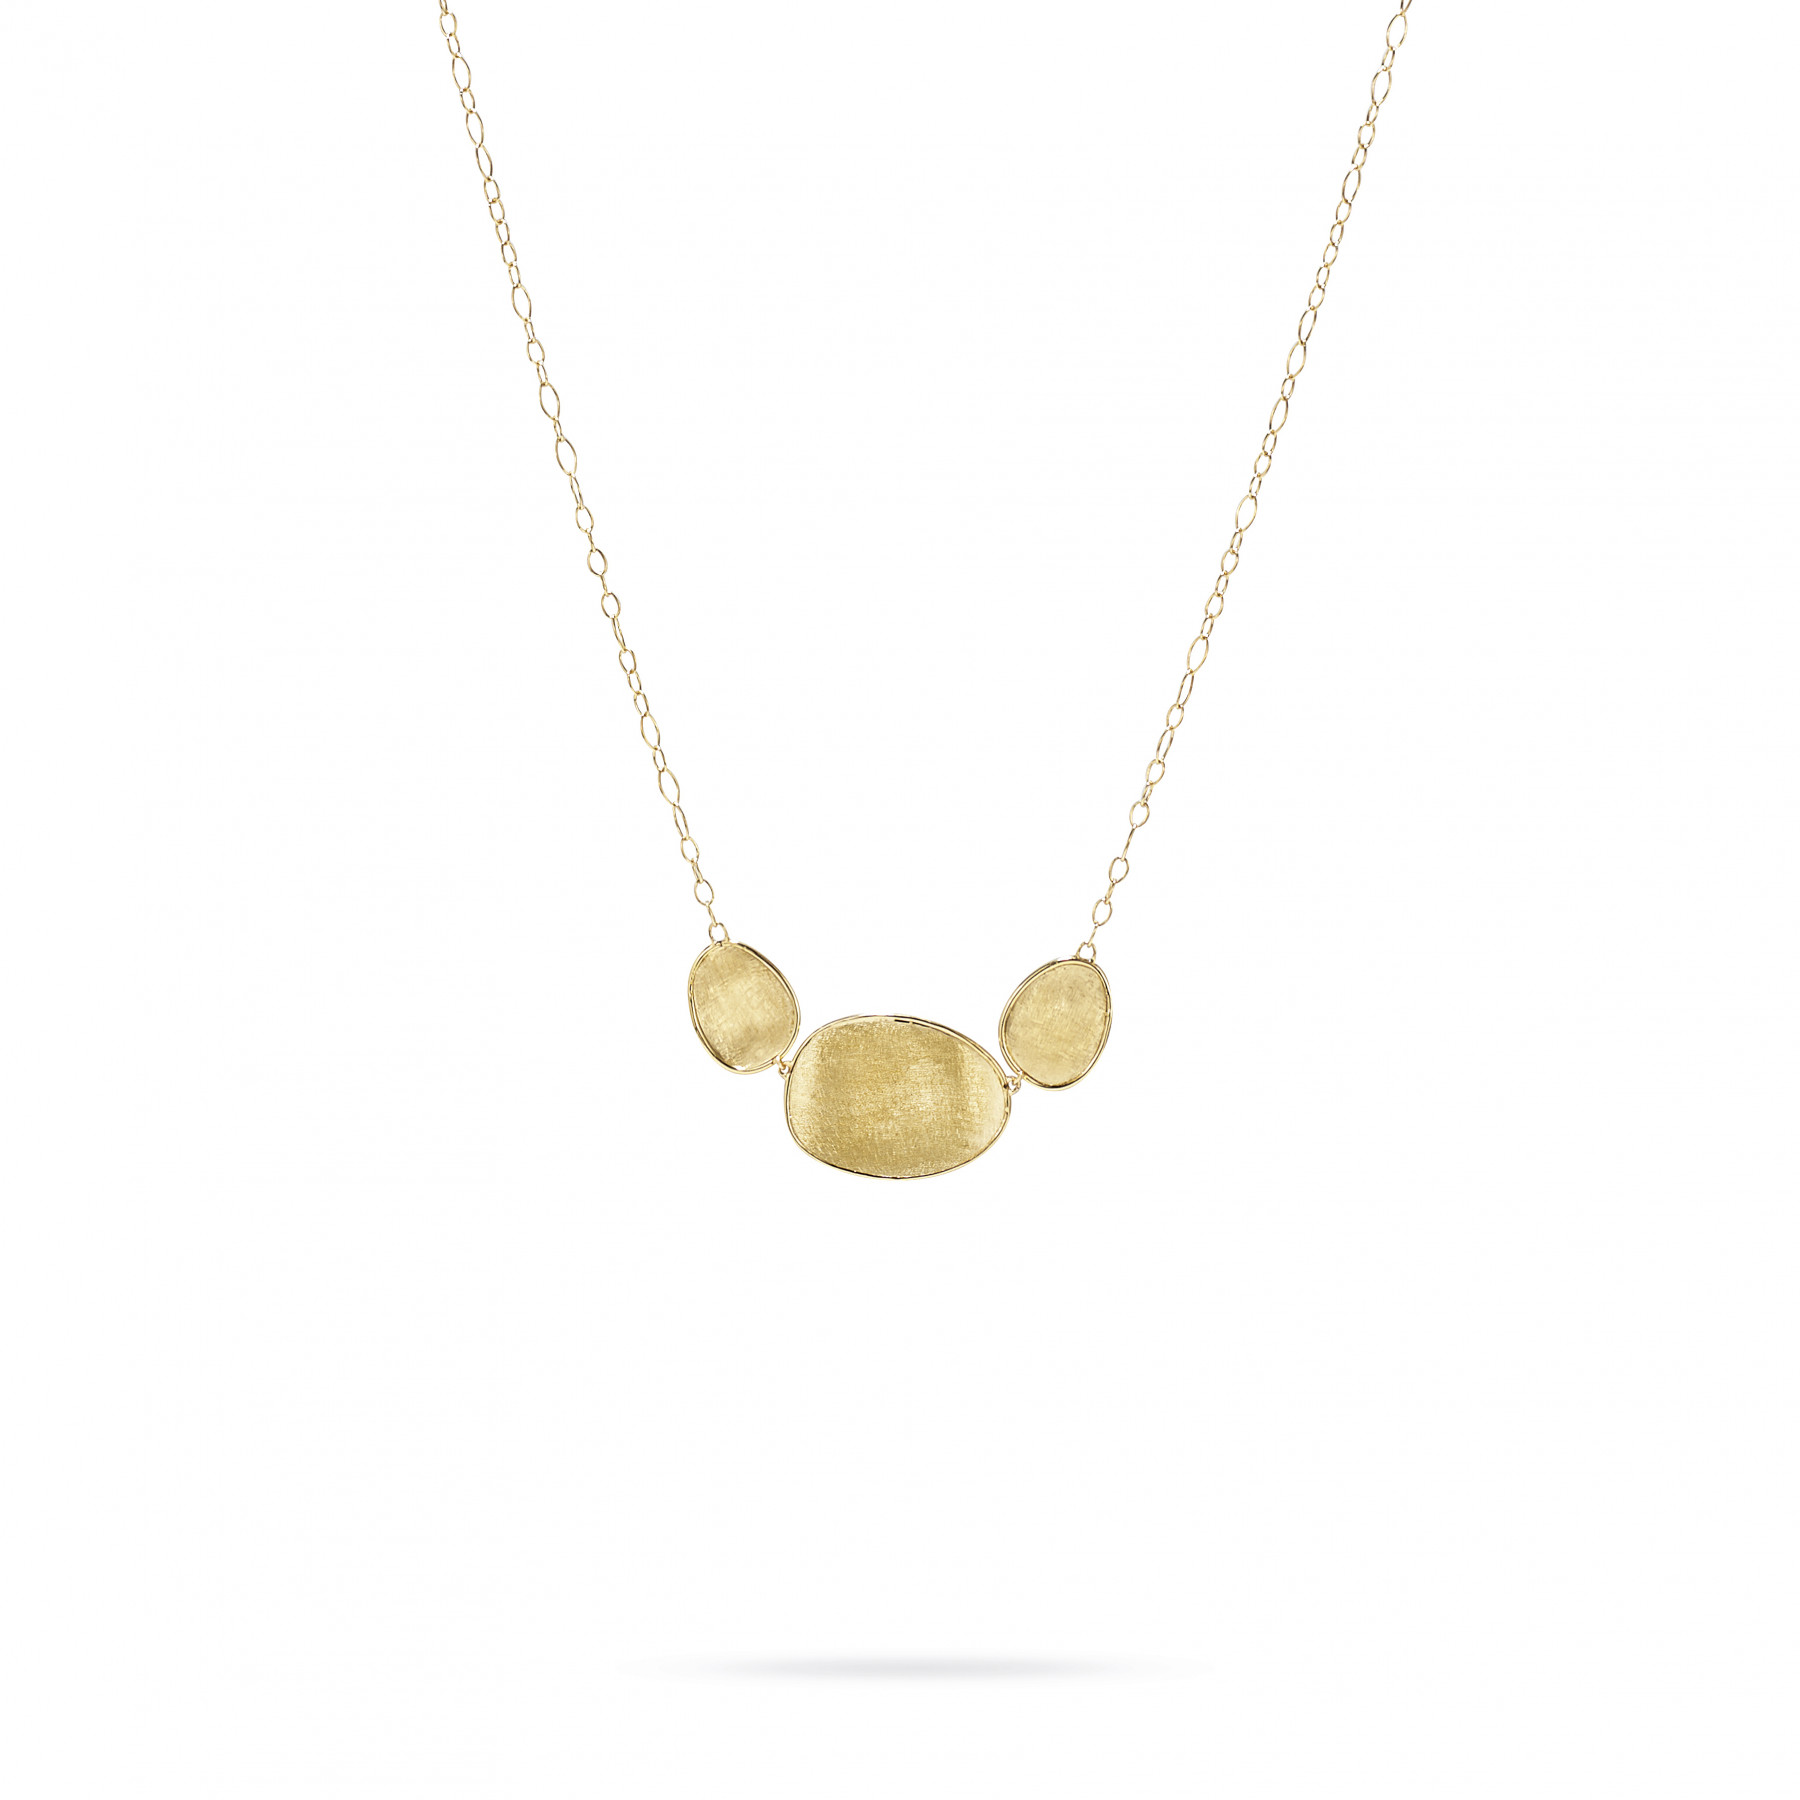 Marco Bicego Lunaria 18kt Yellow Gold 3 Elements Necklace2